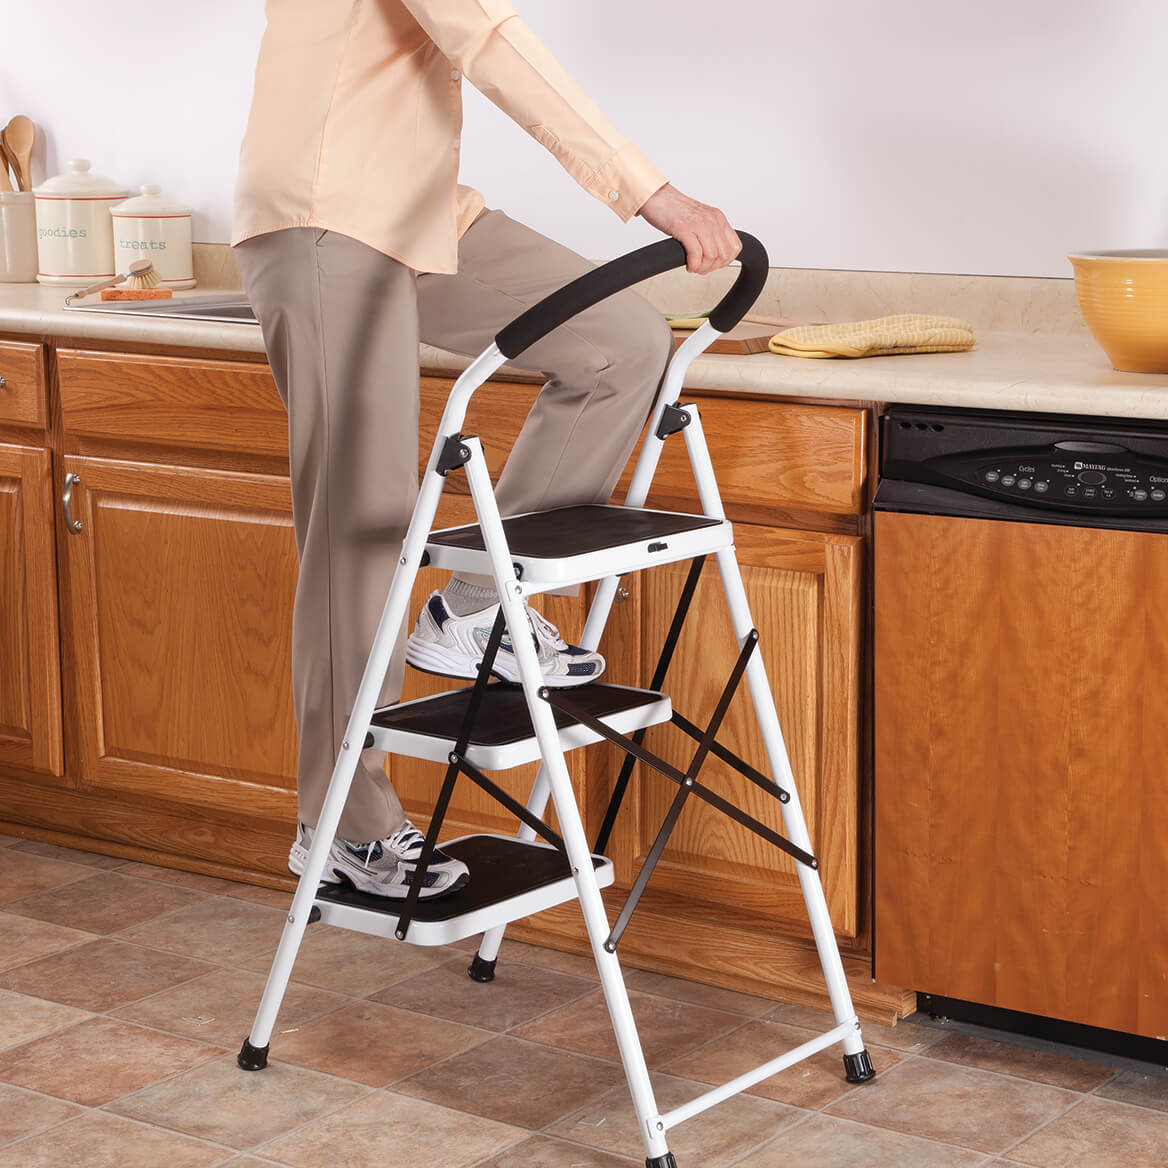 step ladder stool step stool chair step stool ladder miles kimball. Black Bedroom Furniture Sets. Home Design Ideas